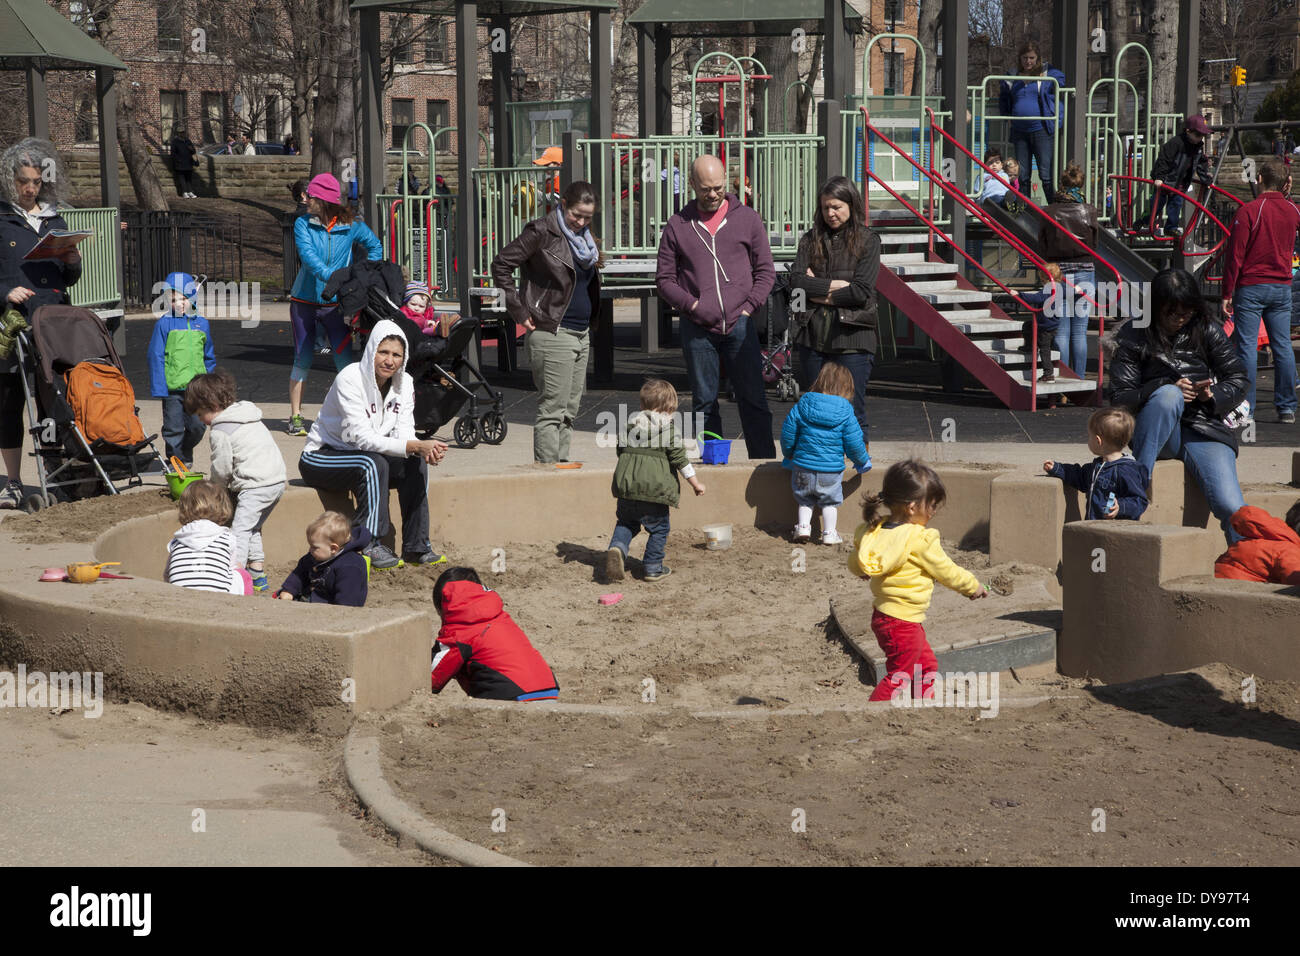 The busy sandbox at the playground in Prospect Park, Park Slope Brooklyn, NY. - Stock Image